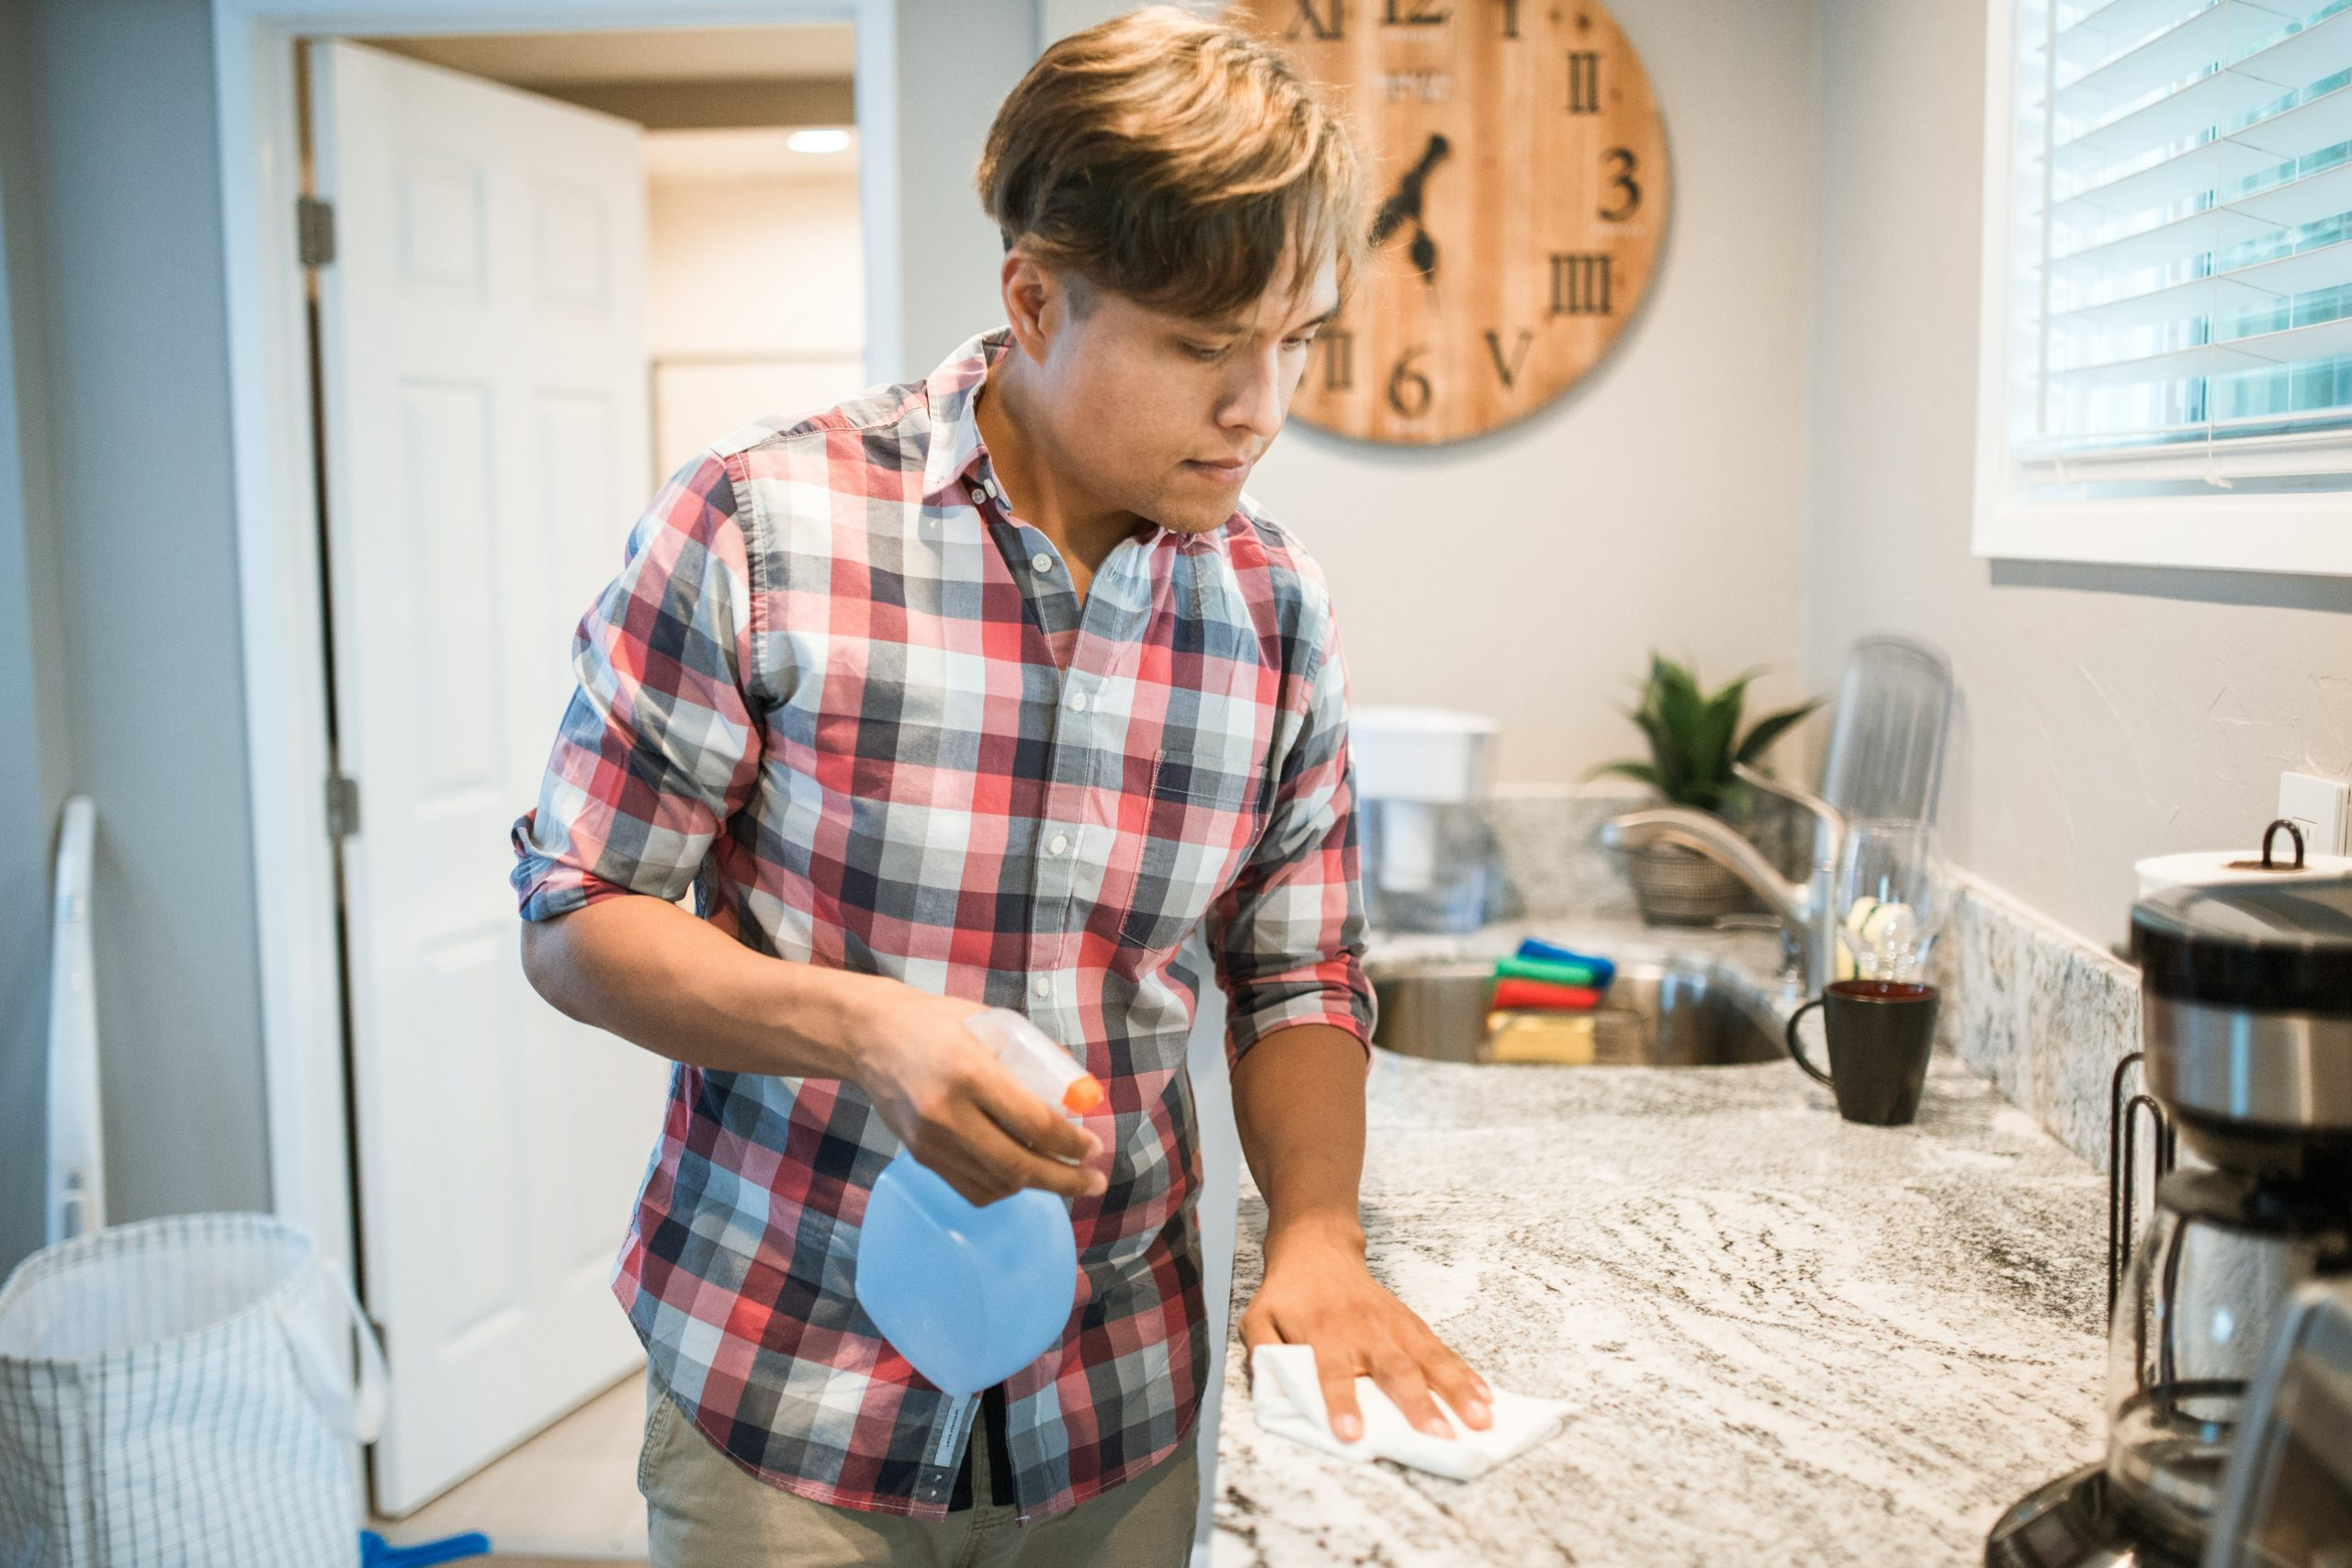 Asian man in checkered shirt washing a marble kitchen counter